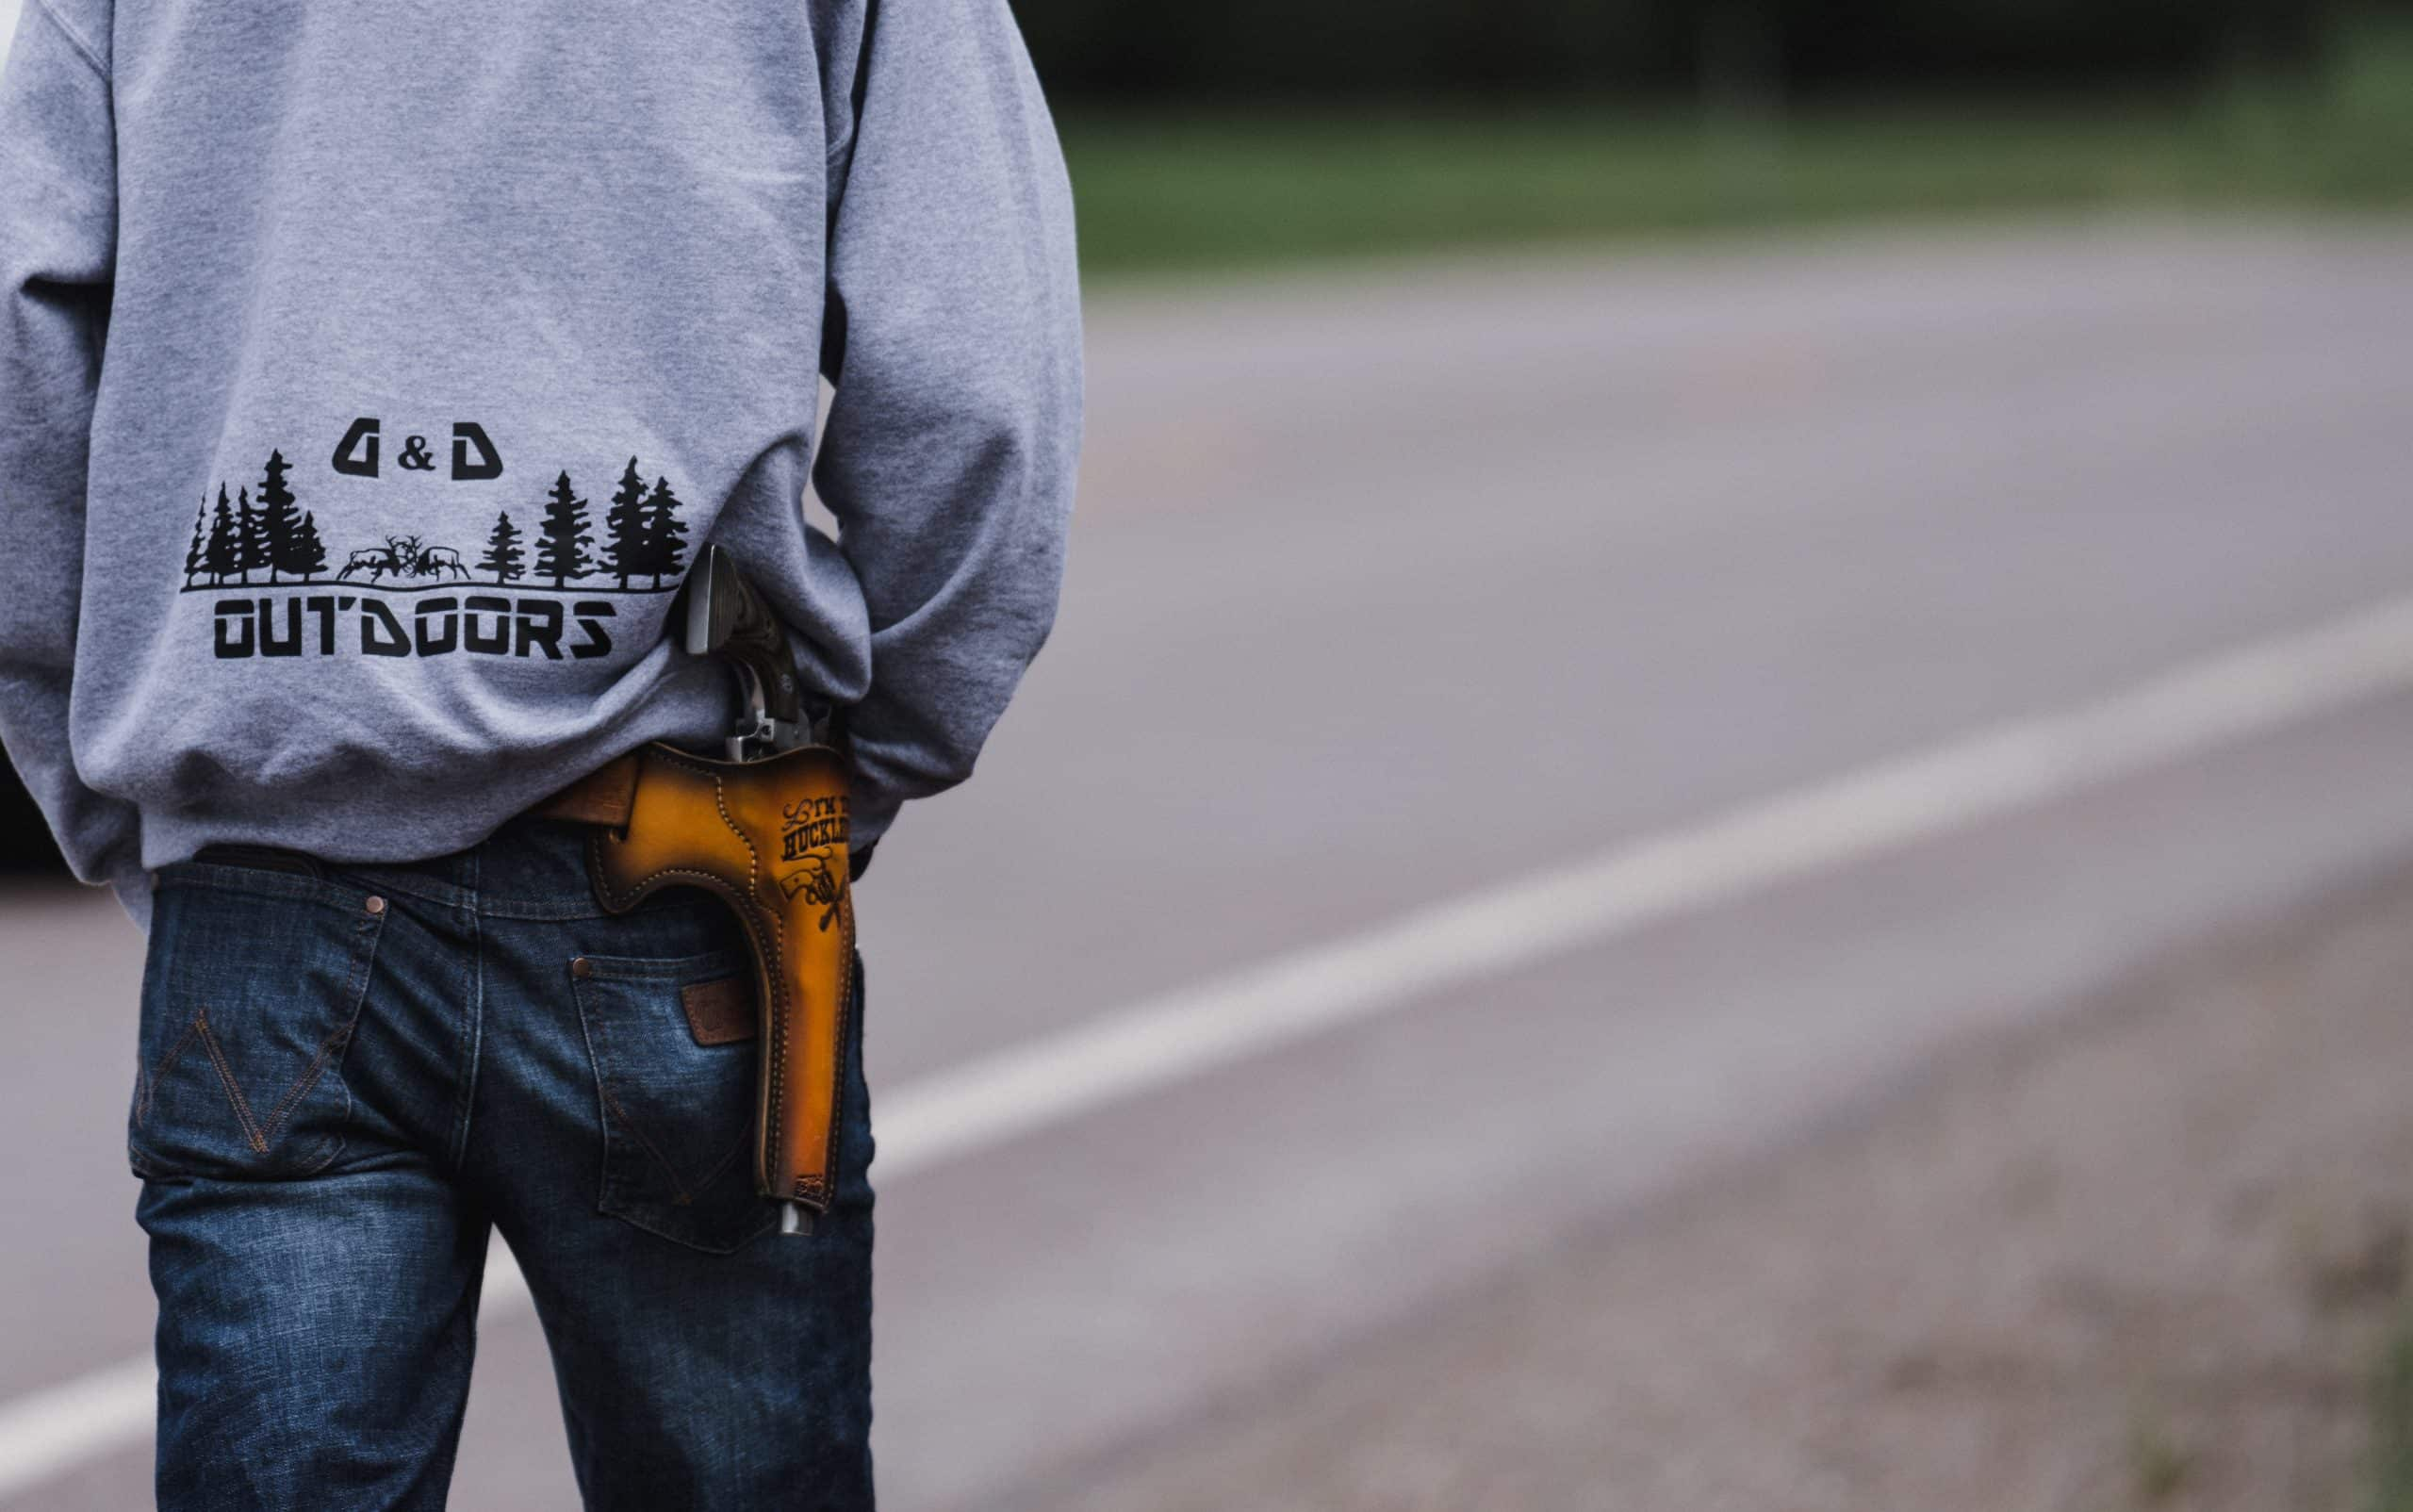 A shed hunter with a pistol in a custom holster on his hip.